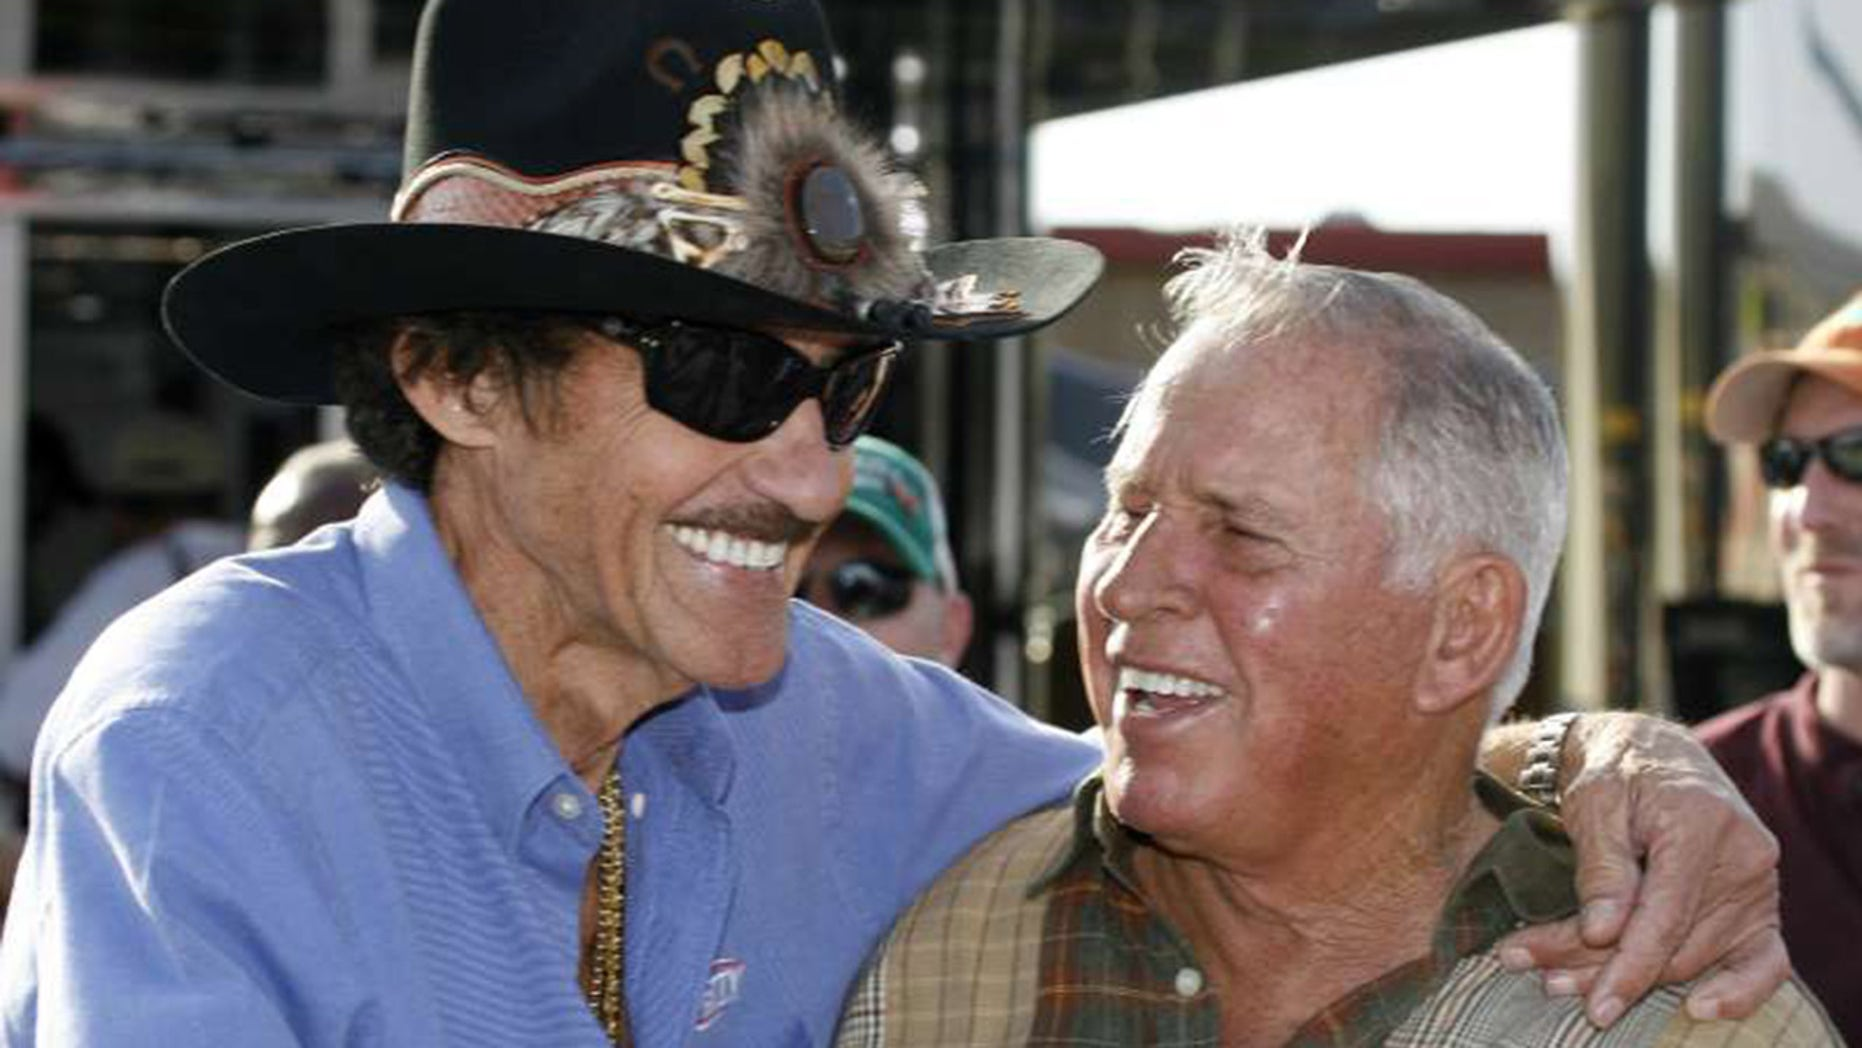 Pearson (r) is second to Richard Petty (l) on the all-time NASCAR wins list.